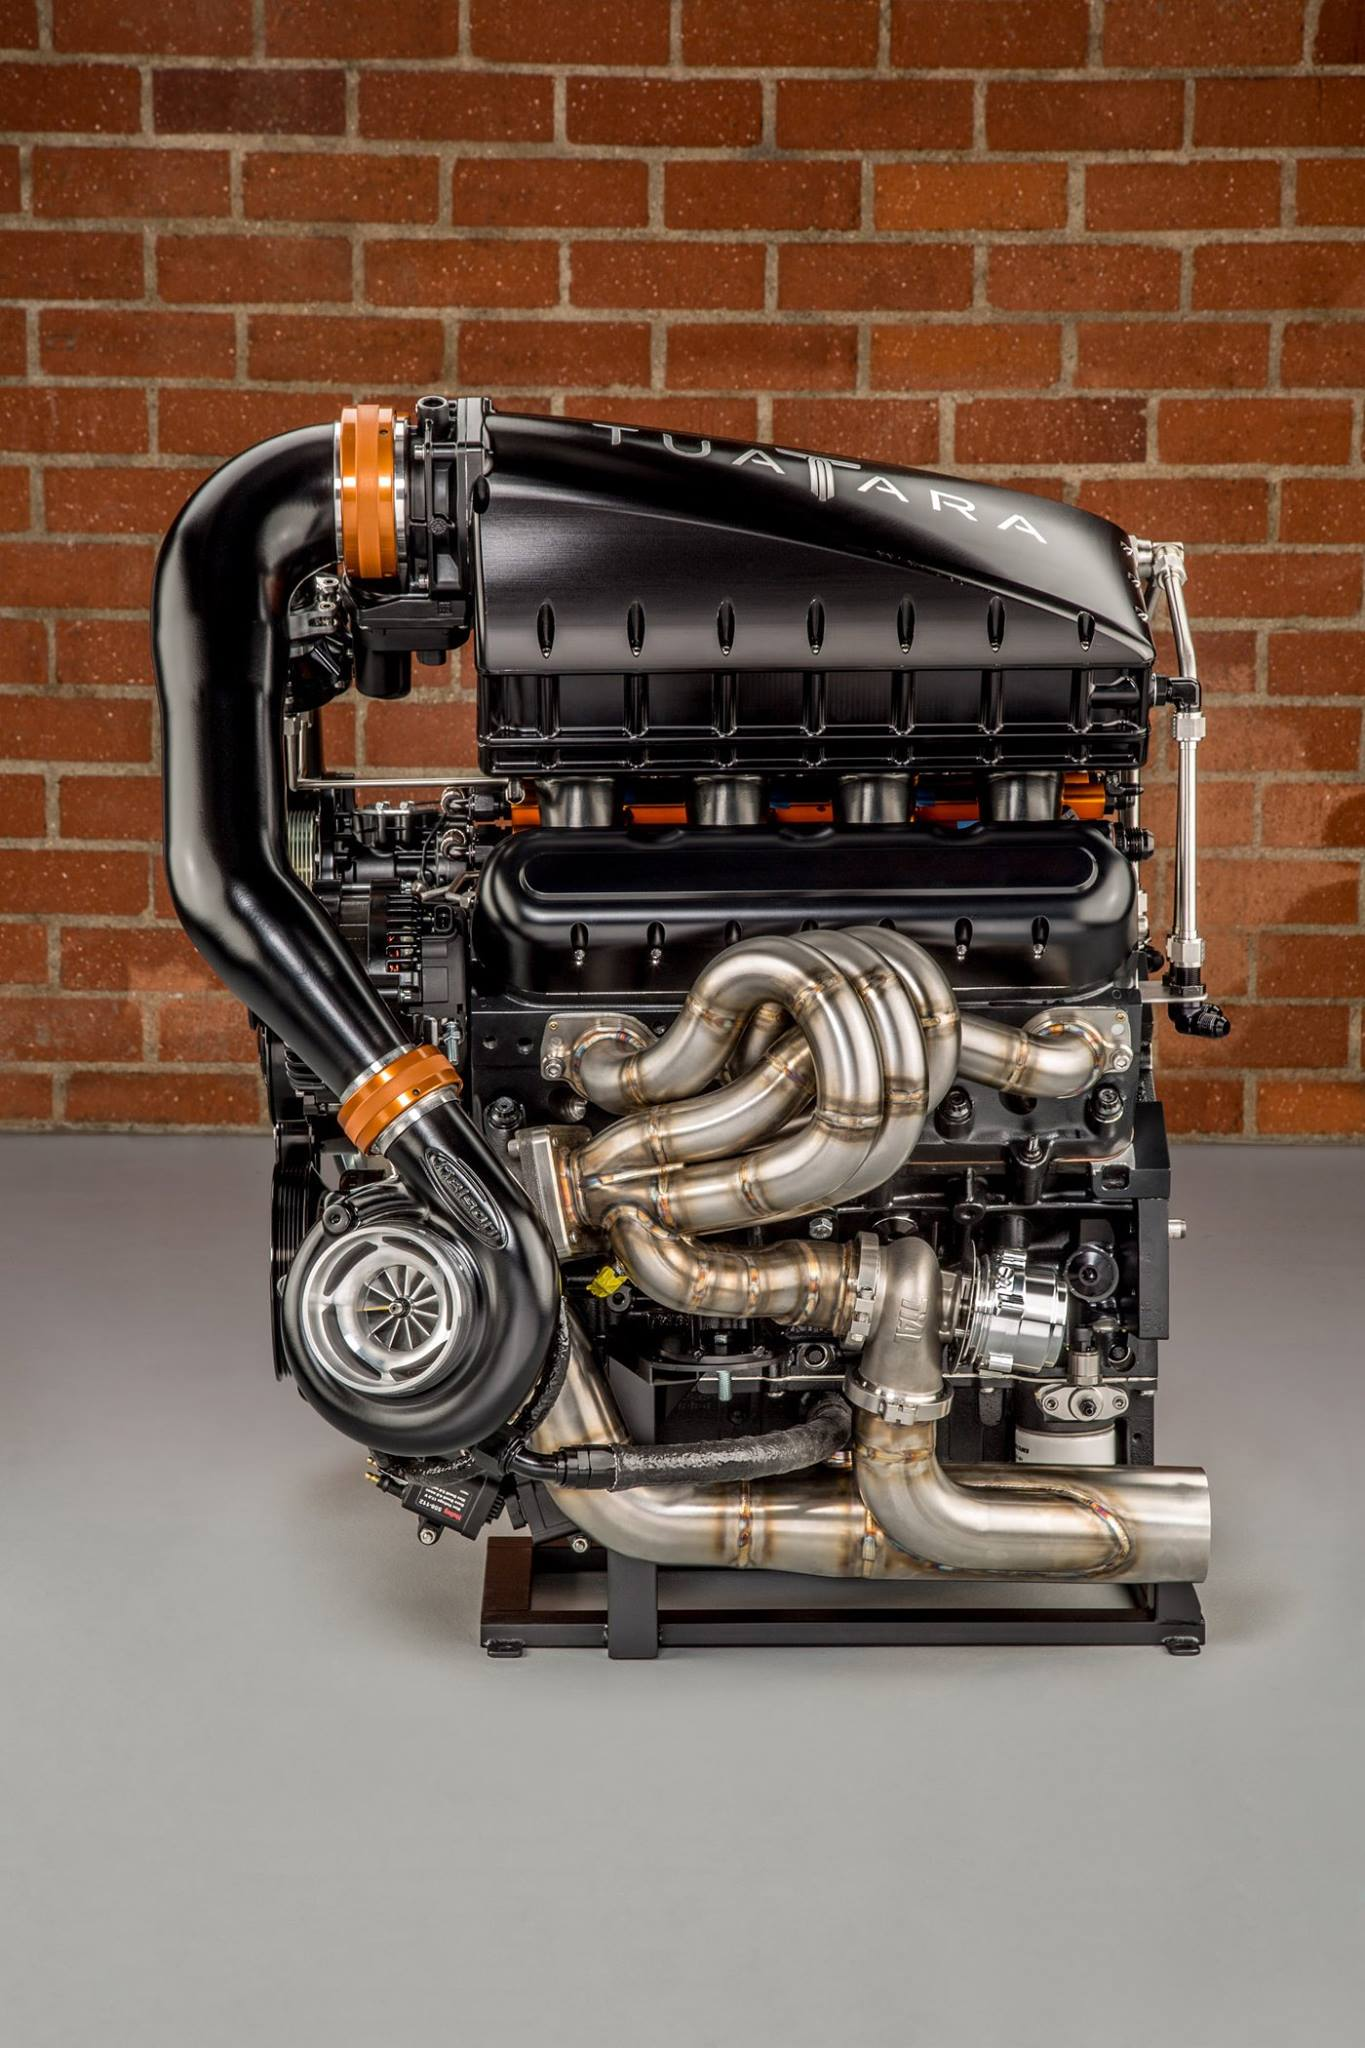 ssc-tuatara-engine-2